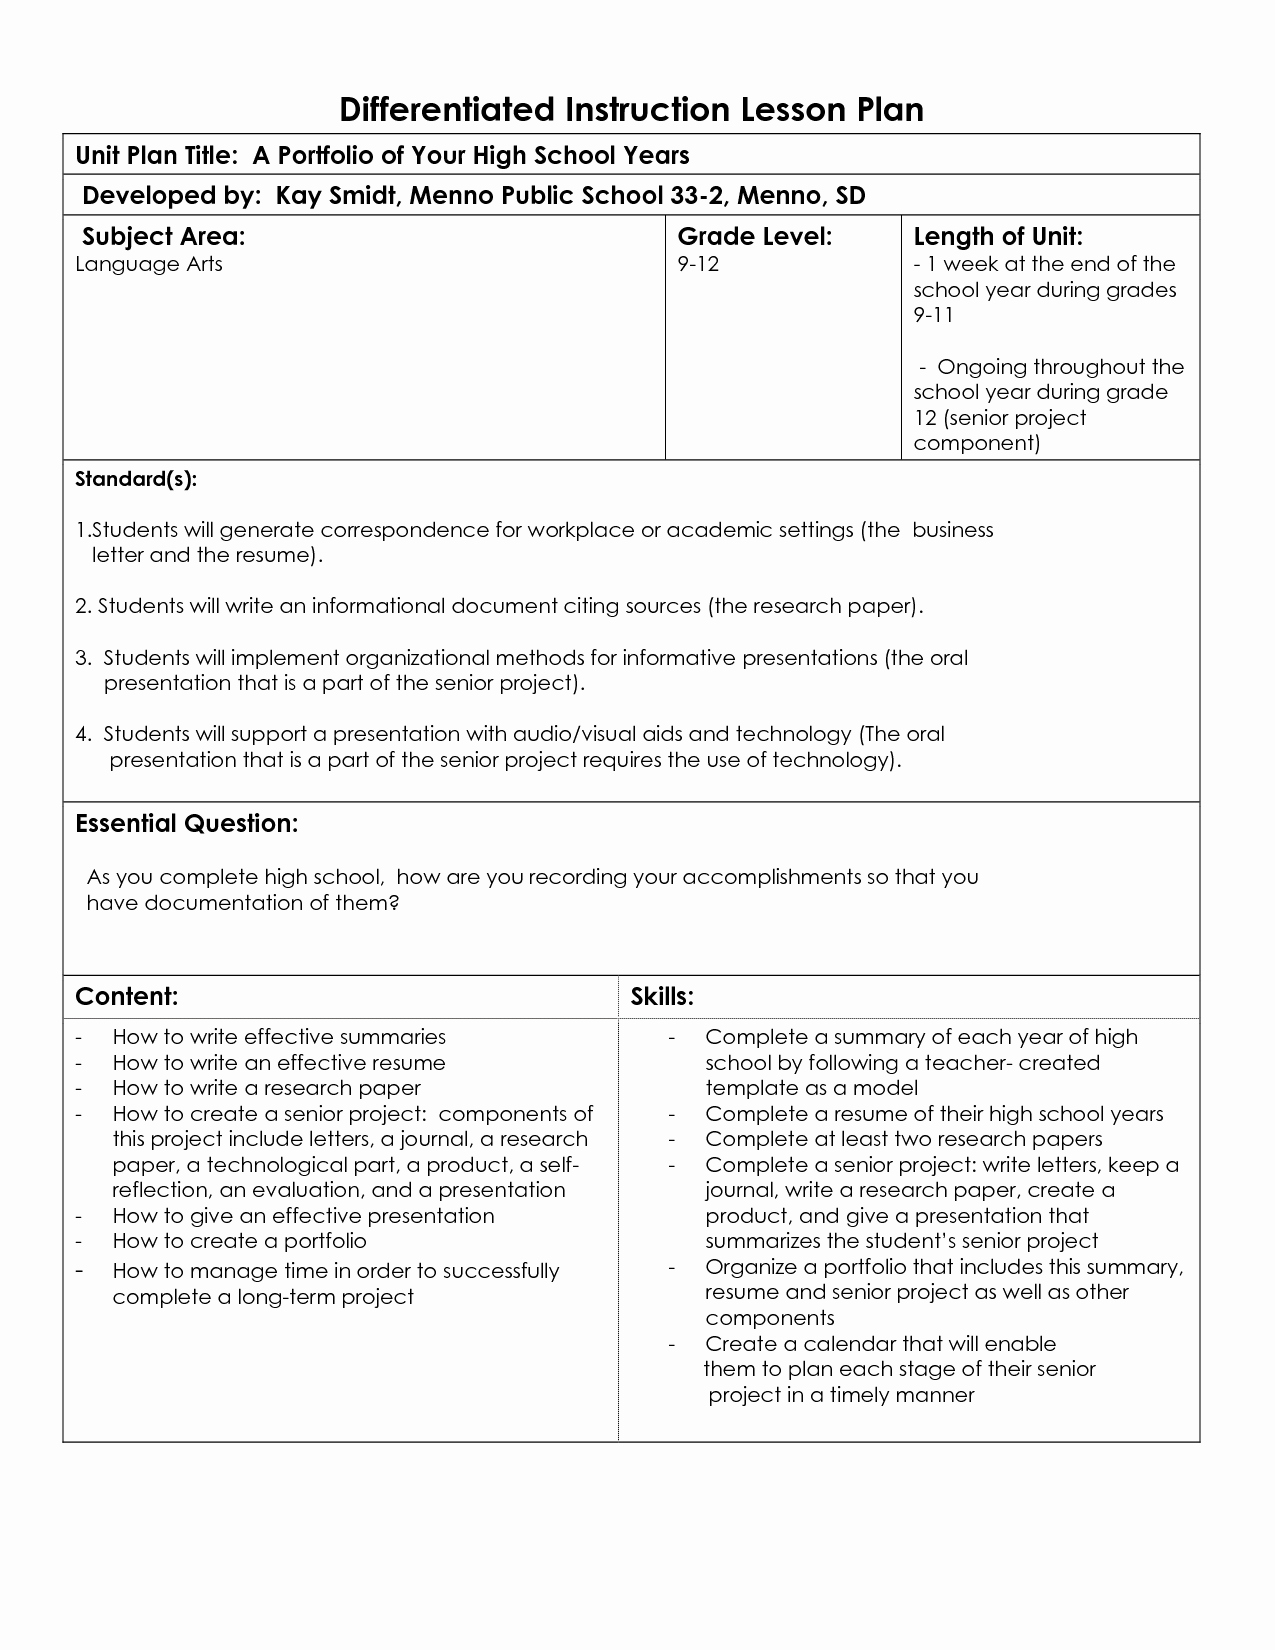 Differentiated Lesson Plan Template New Instruction Professional Development